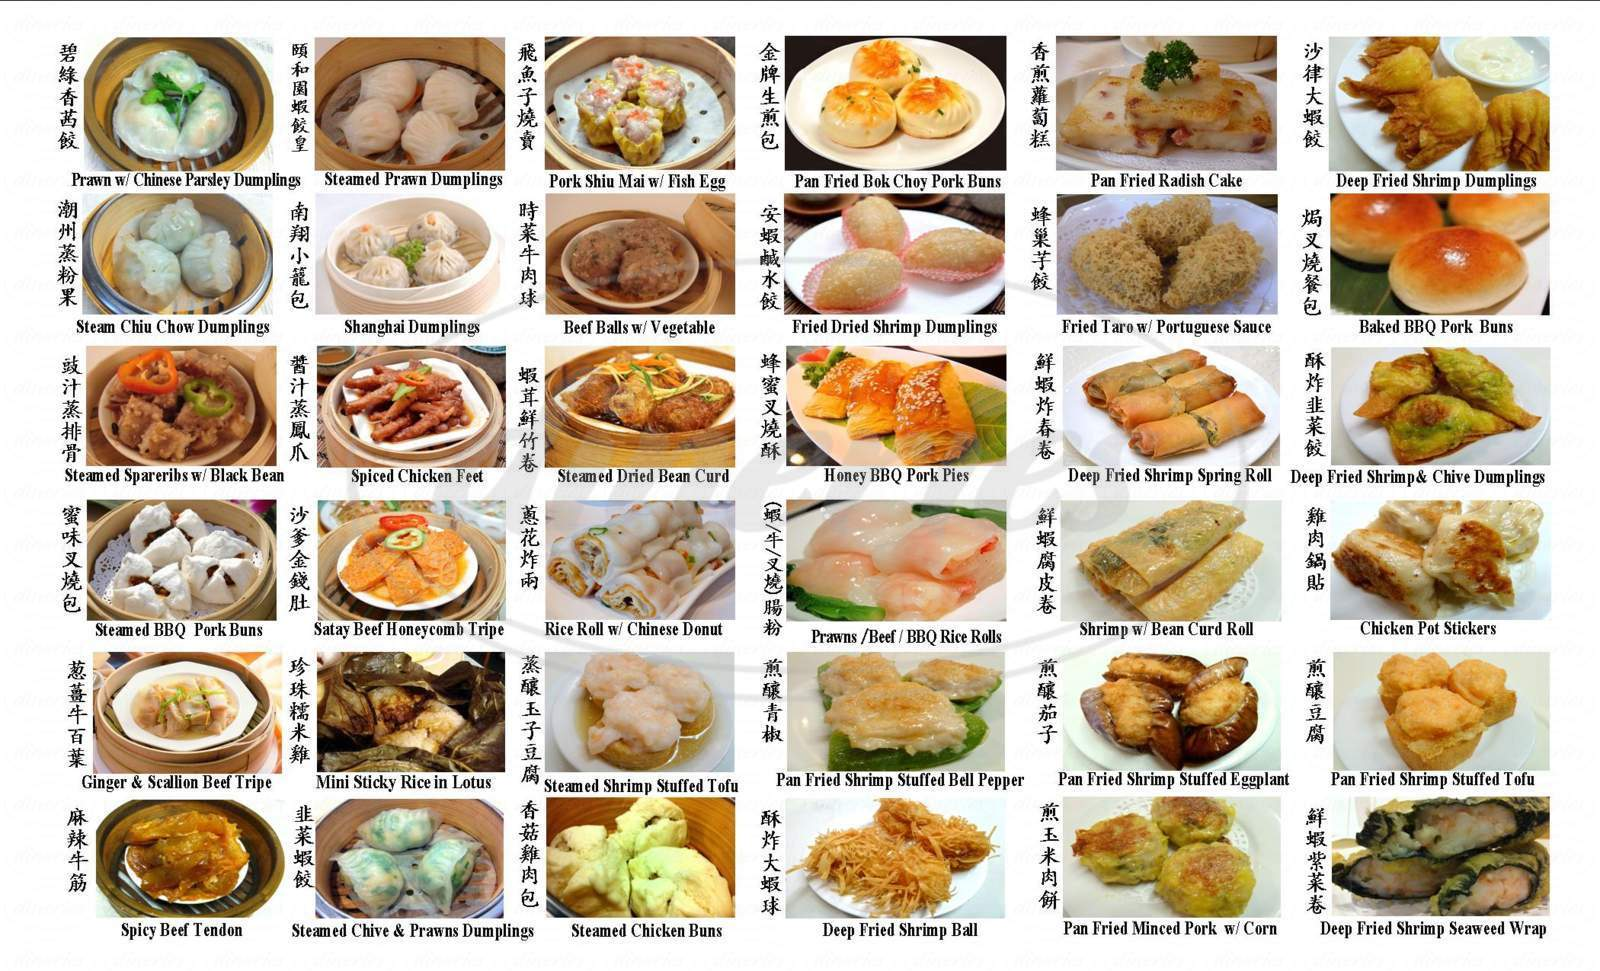 menu for Imperial Garden Seafood Restaurant